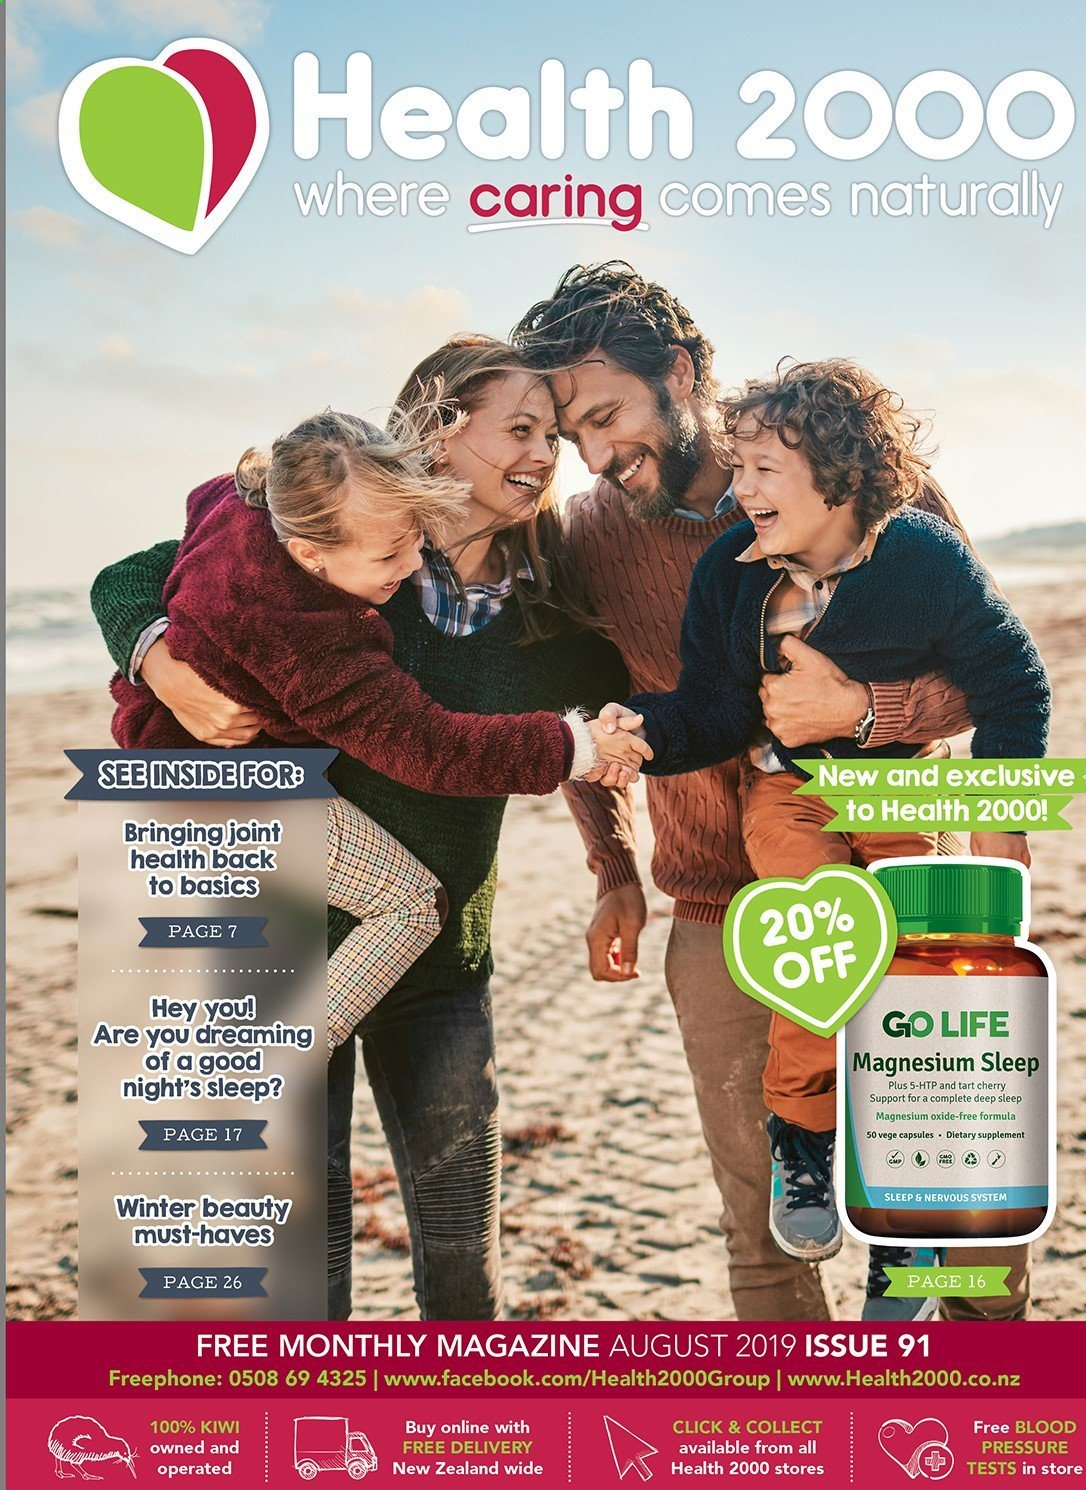 Health 2000 mailer - 01.08.2019 - 31.08.2019 - Sales products - Magnesium, tart. Page 1.